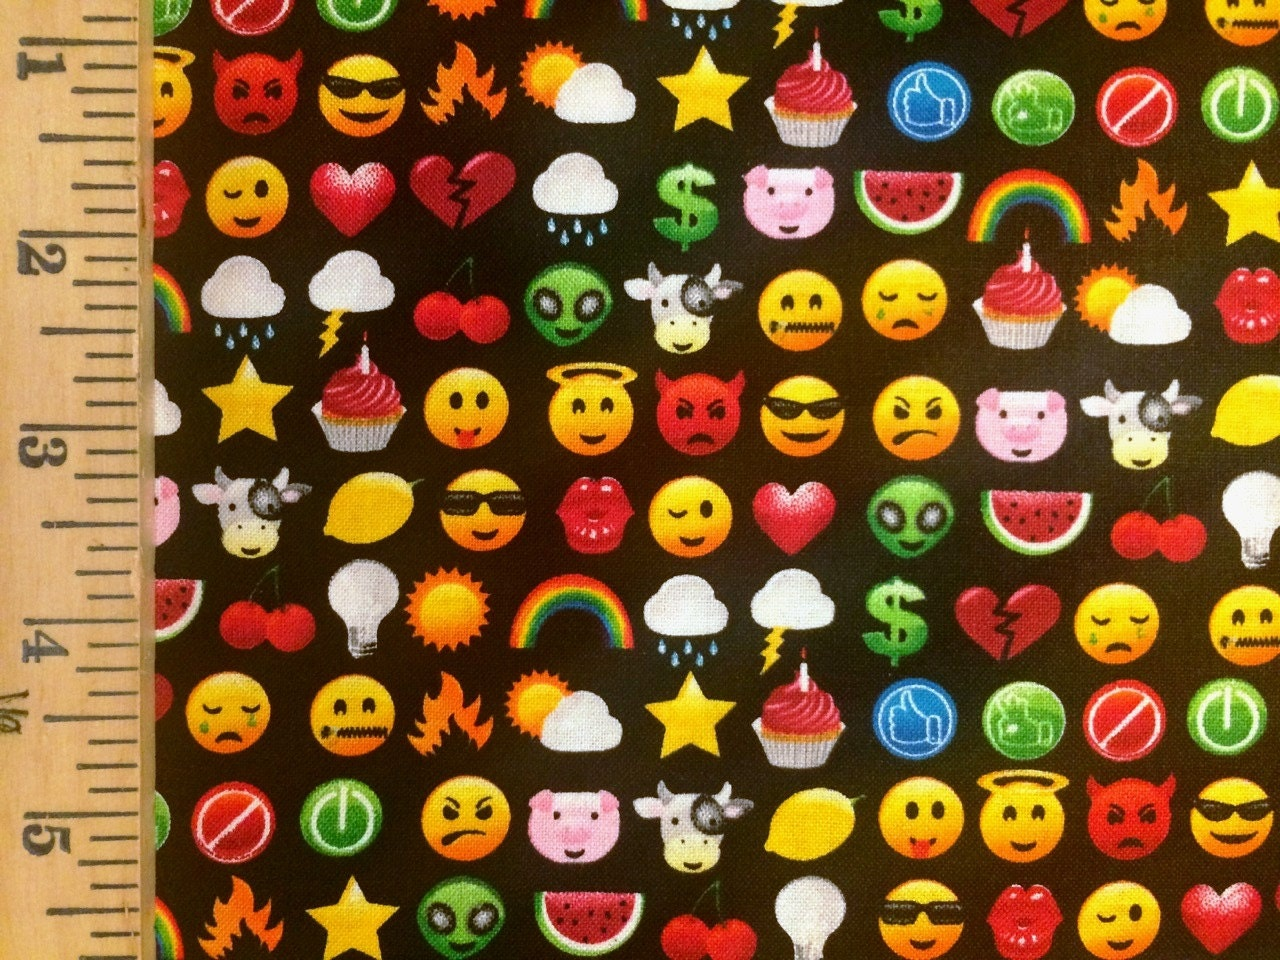 Emoji cotton fabric by timeless treasures sold by for Emoji material by the yard